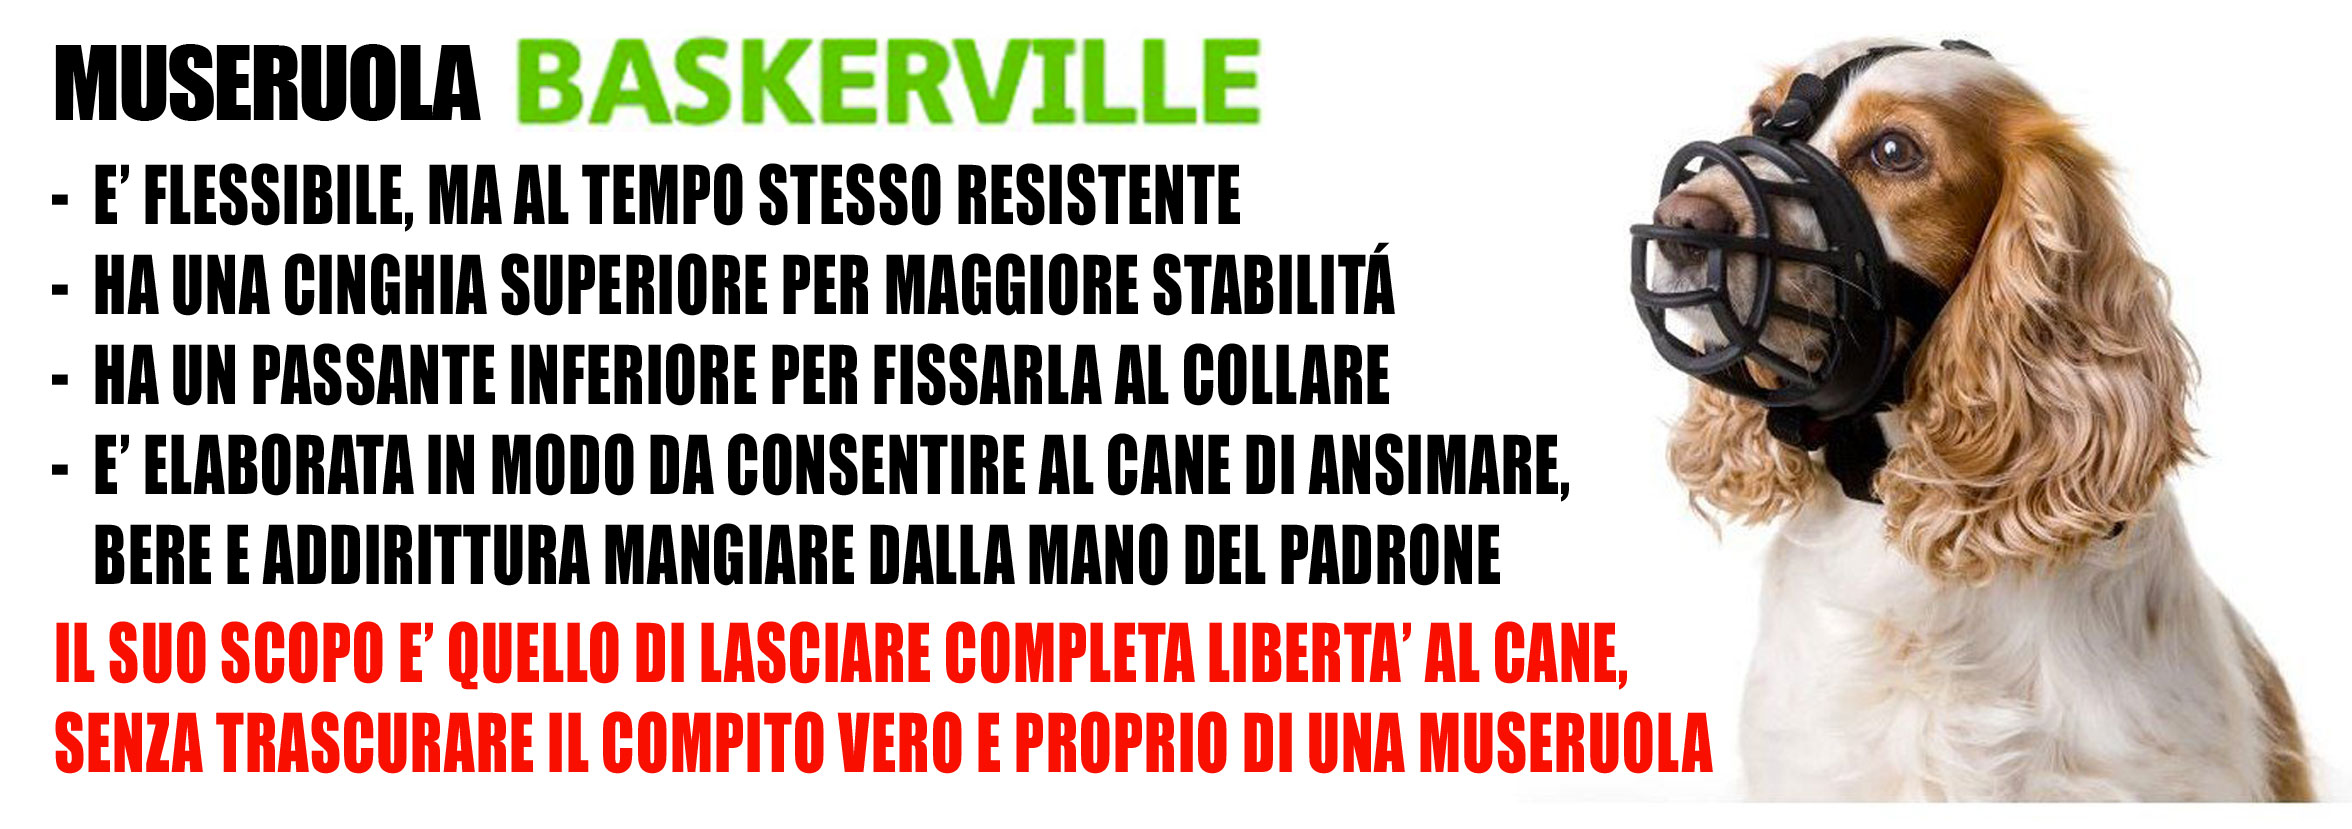 baskerville_sito